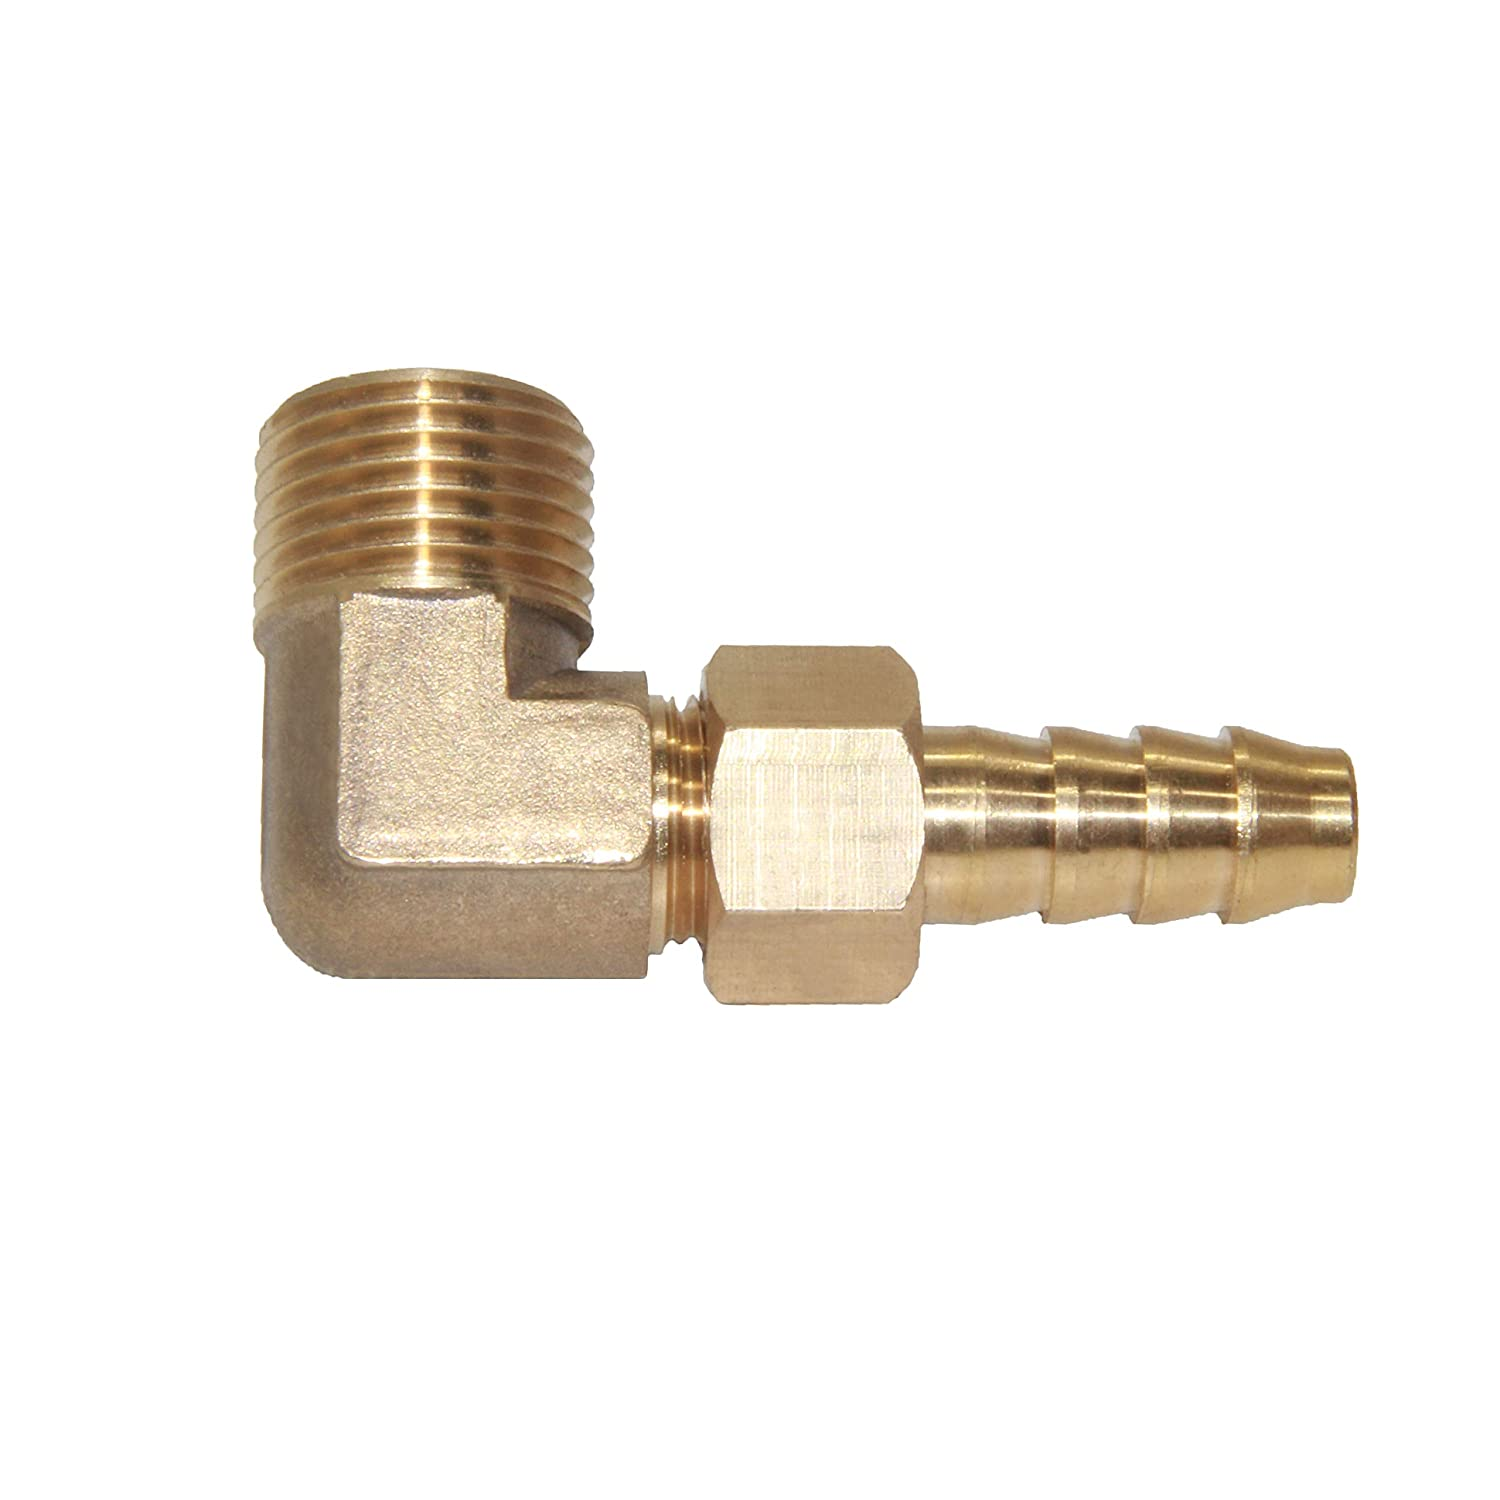 Water//Fuel//Air 90 Degree Elbow Joyway 3//8 Barb Swivel x 1//2 Male Pipe Brass Hose Fitting